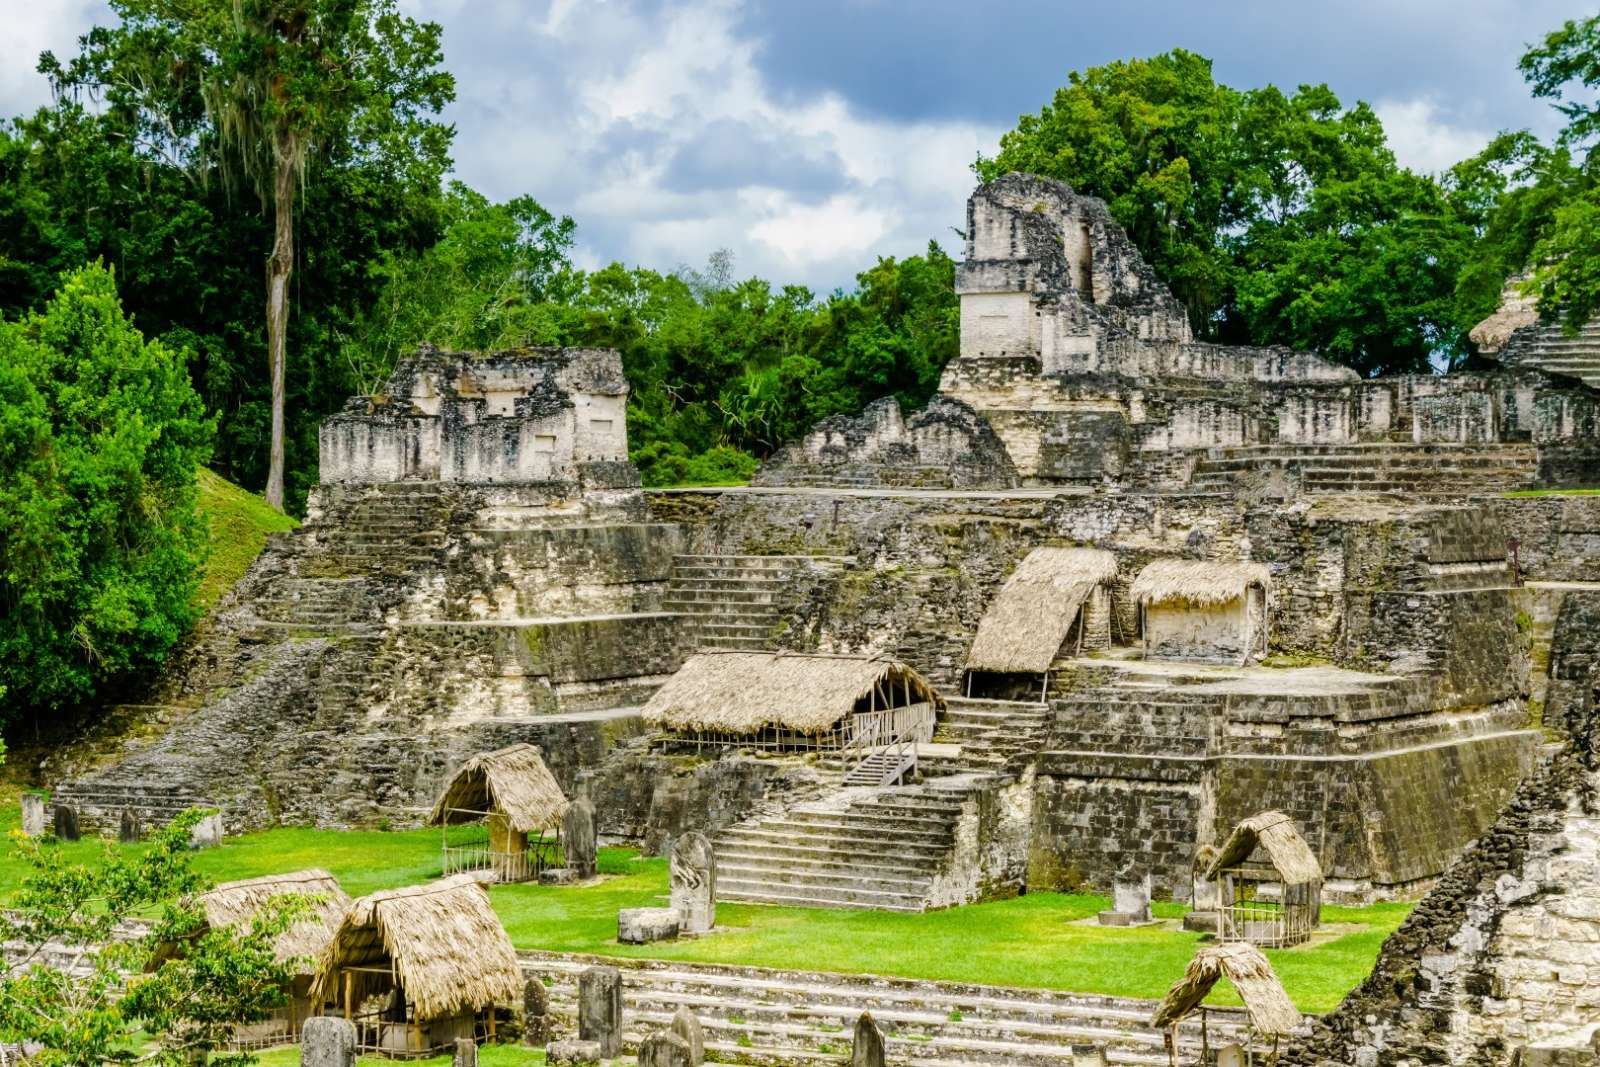 Large pyramid at Tikal, Guatemala